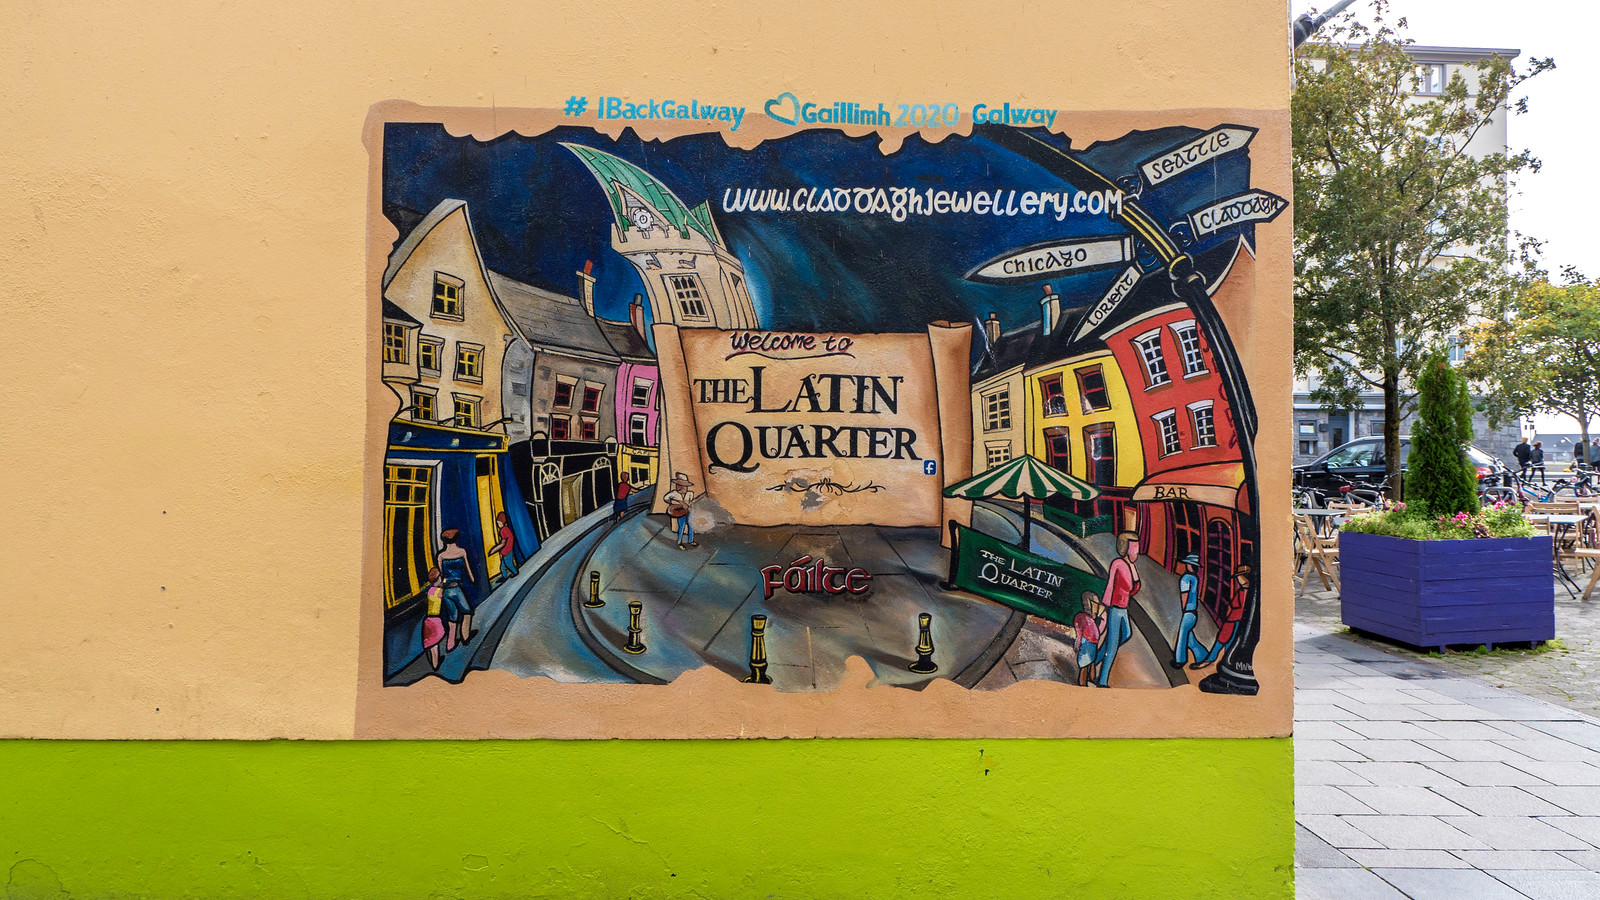 The Latin Quarter mural in Galway Ireland